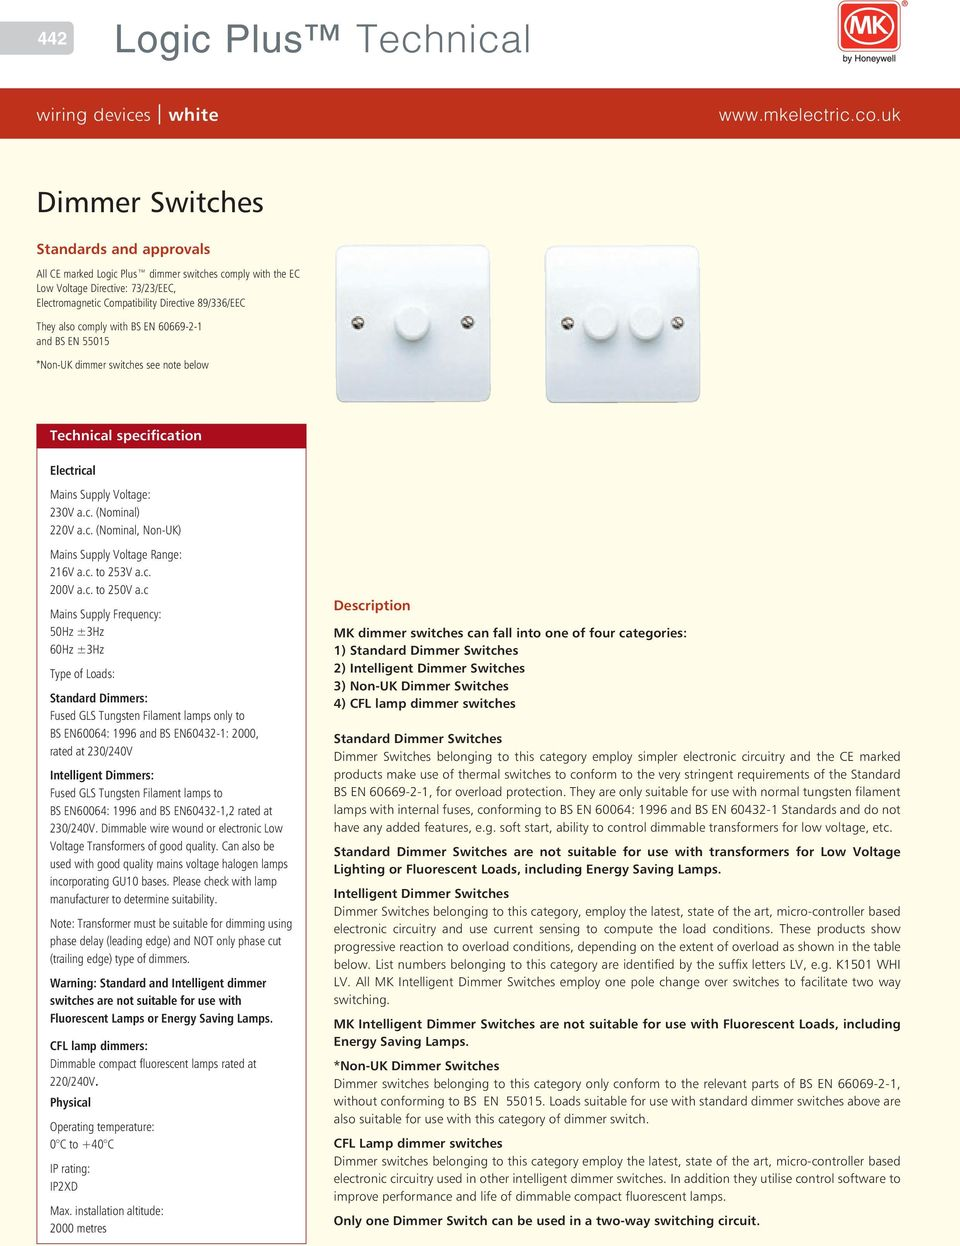 Logic Plus Technical Switchsocket Outlets White Wiring Devices Below Is A Single Pole Dimmer Switch Controlling Flourescent Light E 0 On Uk Switches See Note Mains Supply Voltage 0v